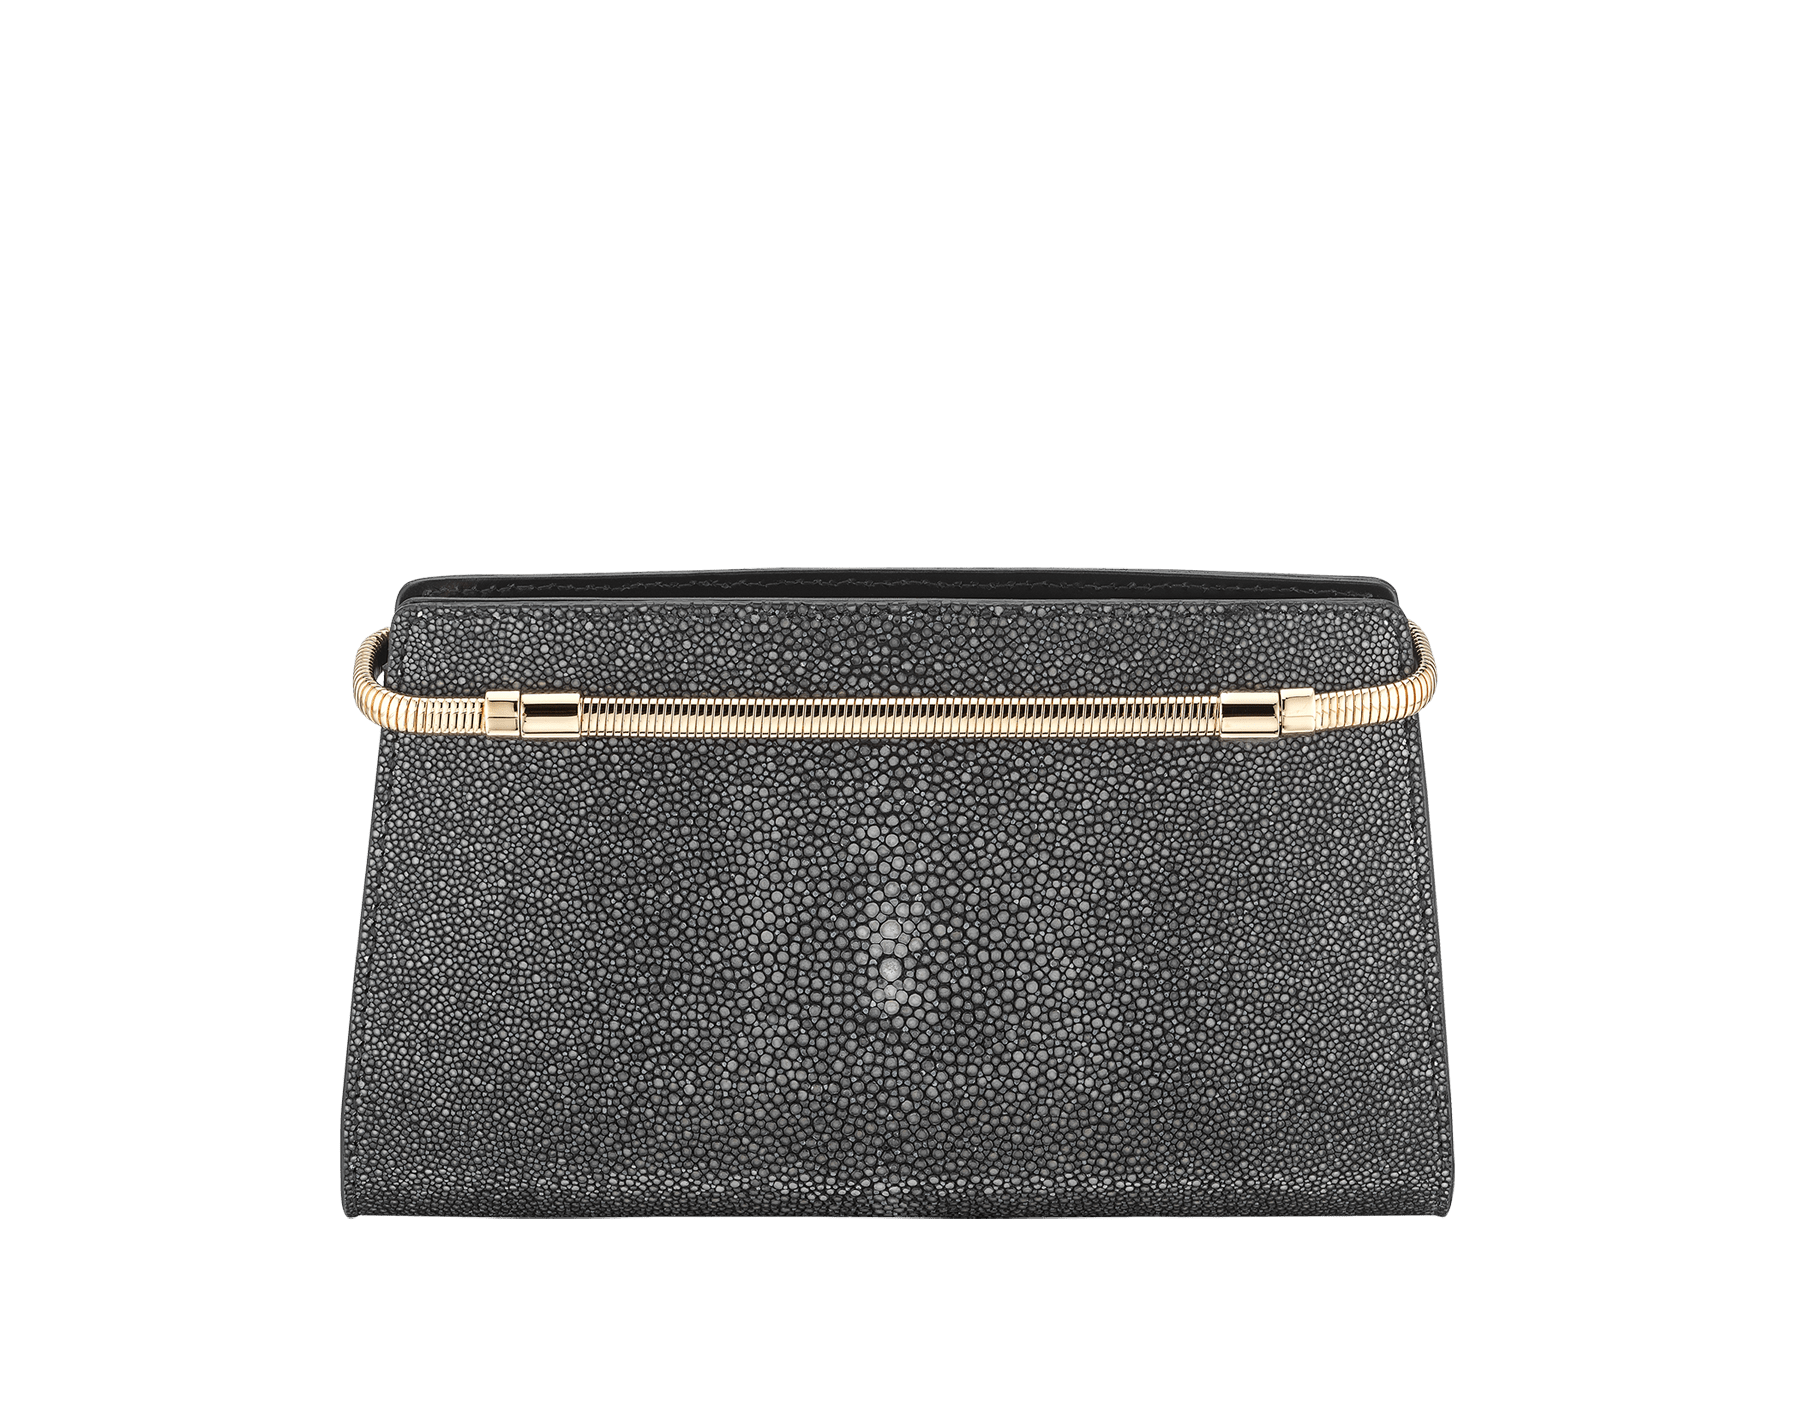 Serpenti Tubogas clutch in black galuchat skin and calf leather. Brass light rose gold plated snake body-shaped frame closure with black enamel. 526-001-0671S image 3